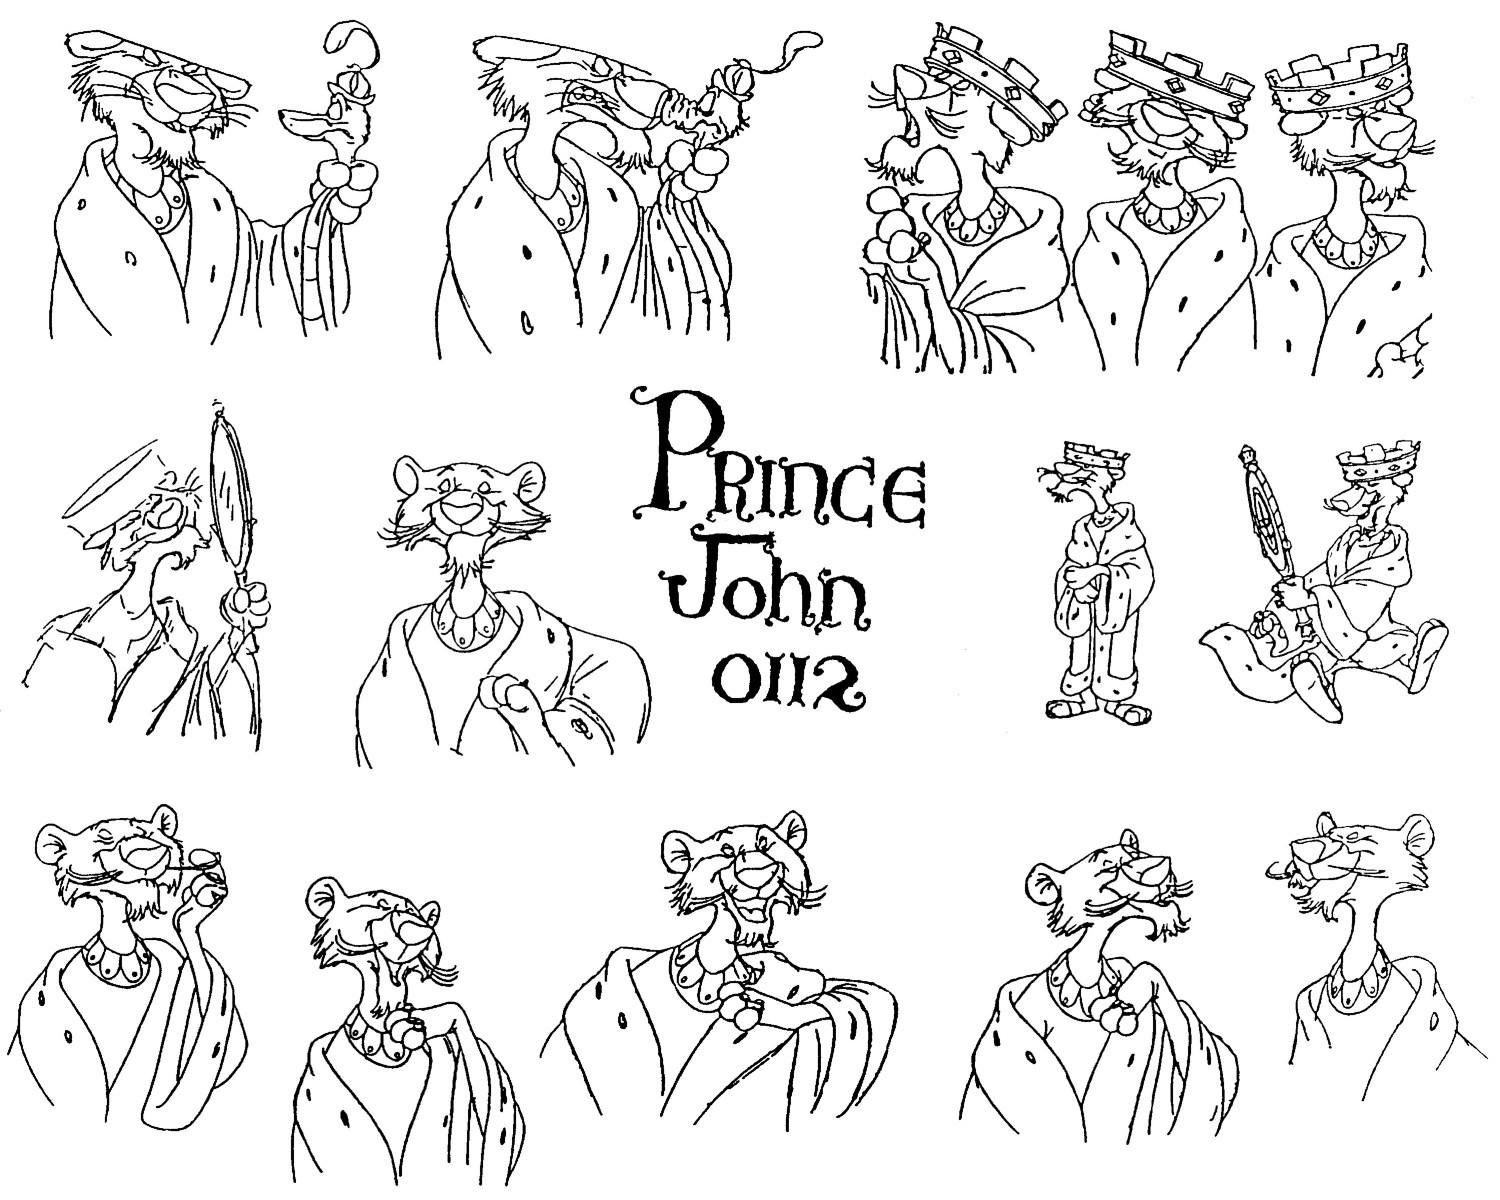 an analysis of king johns personality in disneys version of robin hood From the beautiful maid marian to the evil prince john, there are loads of main robin hood characters from the disney version this quiz gives you a chance to find out which one you are.